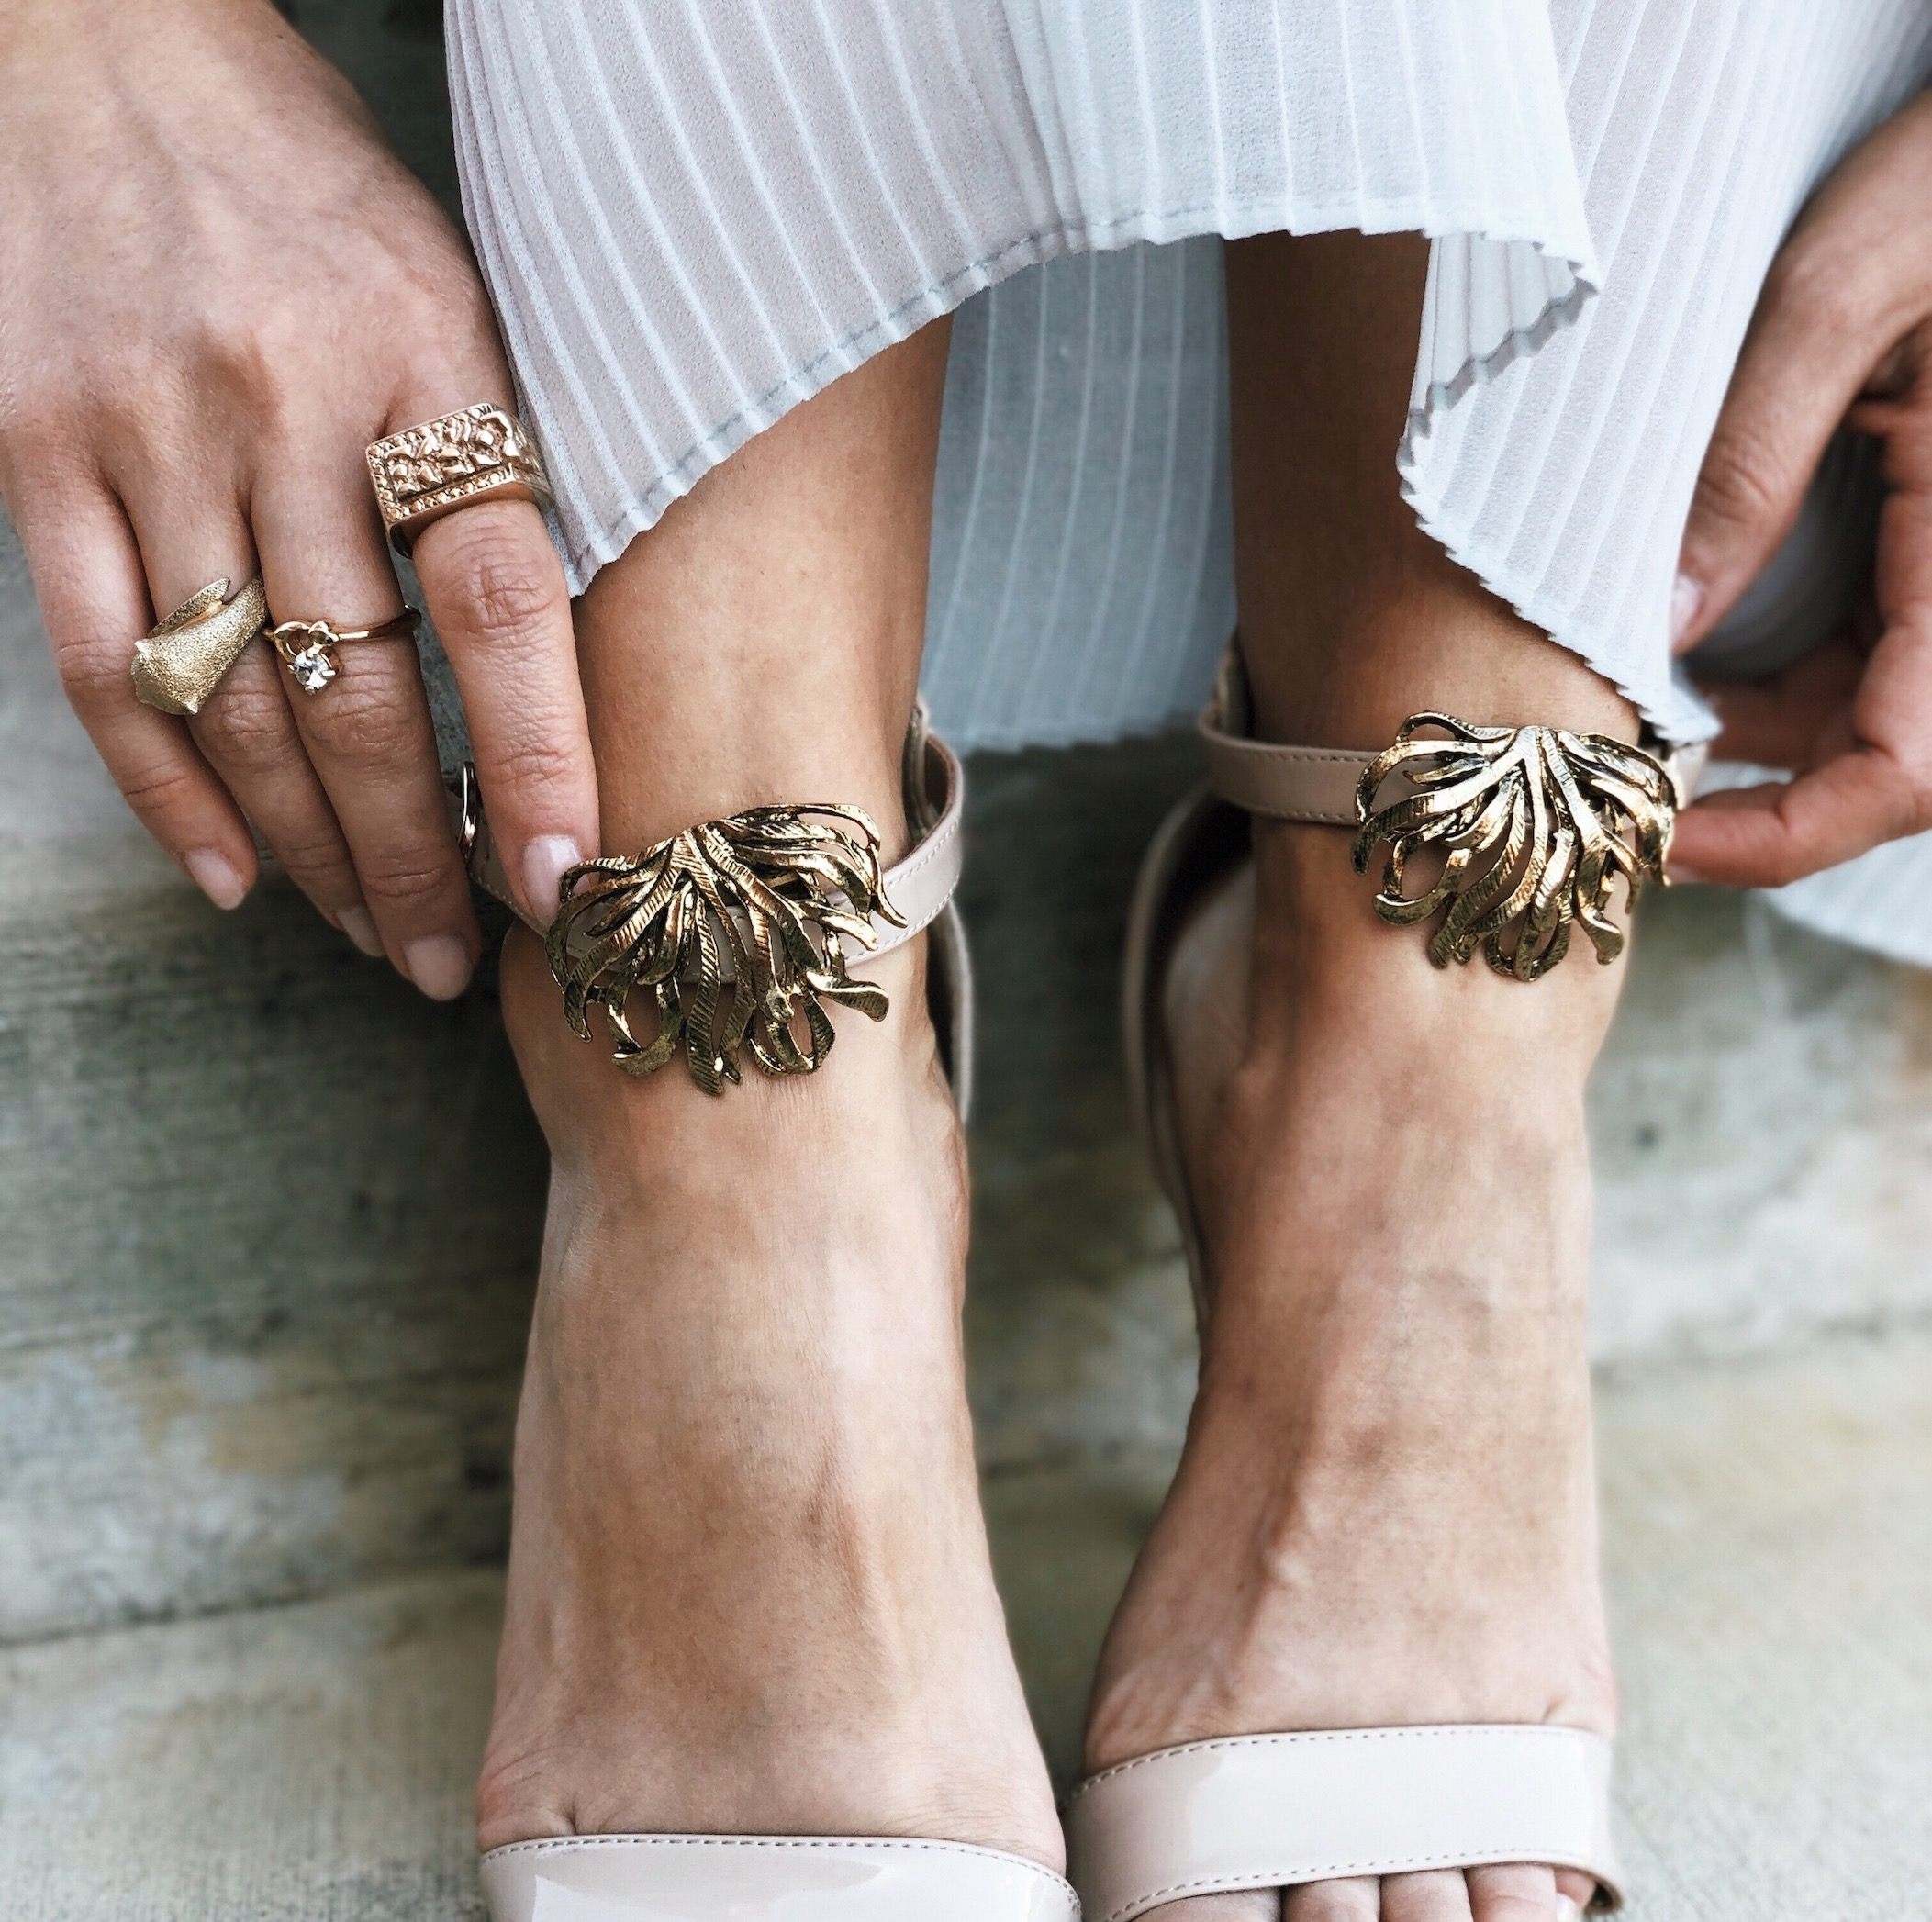 Clip on shoe accessories - A Week Of Cruelty-Free Outfits & Vegan Beauty With Jessica Salazar From All There August on The Good Trade